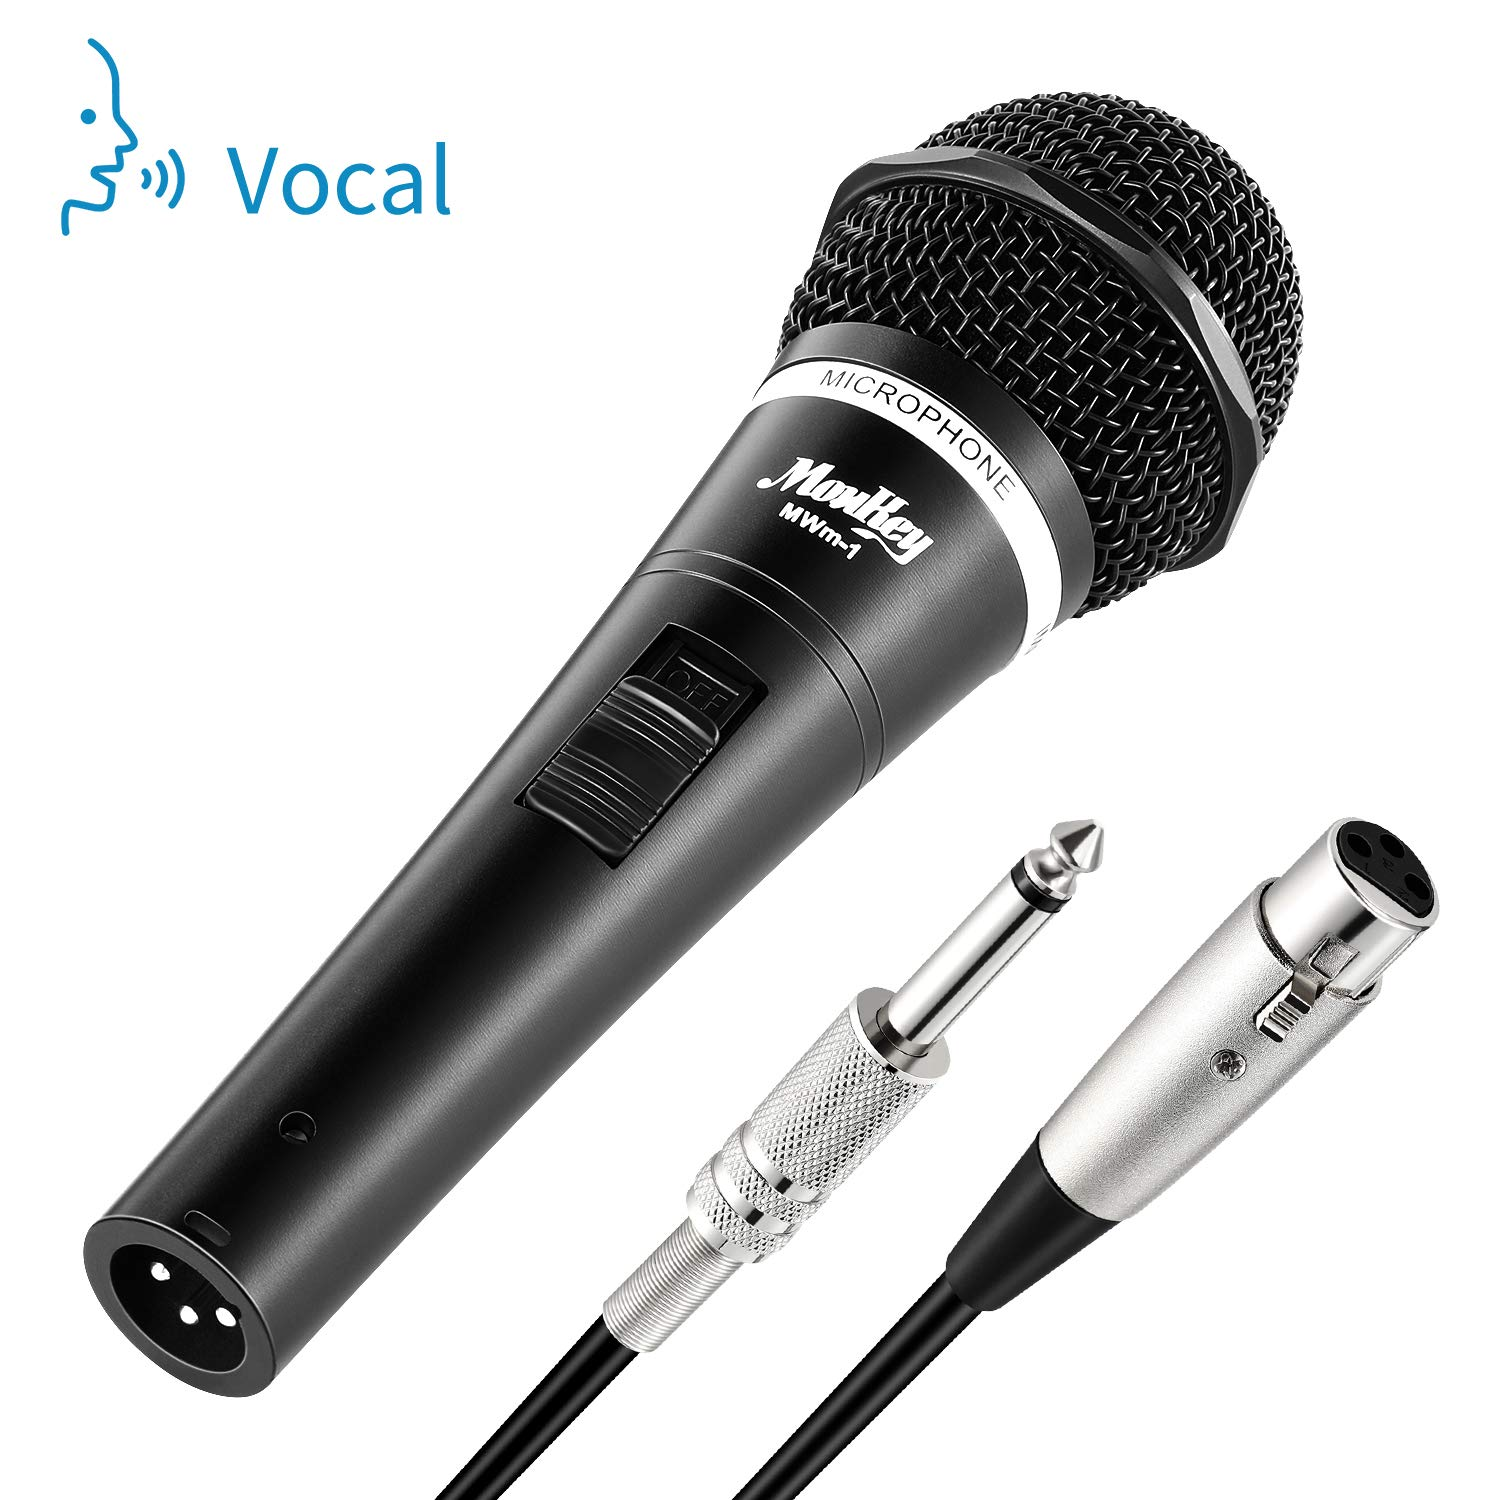 Moukey MWm-1 Dynamic Vocal Microphone Wired Handheld Karaoke Mic for Singing, Karaoke Machine, Live with 16.40 ft XLR Detachable Cable by Moukey